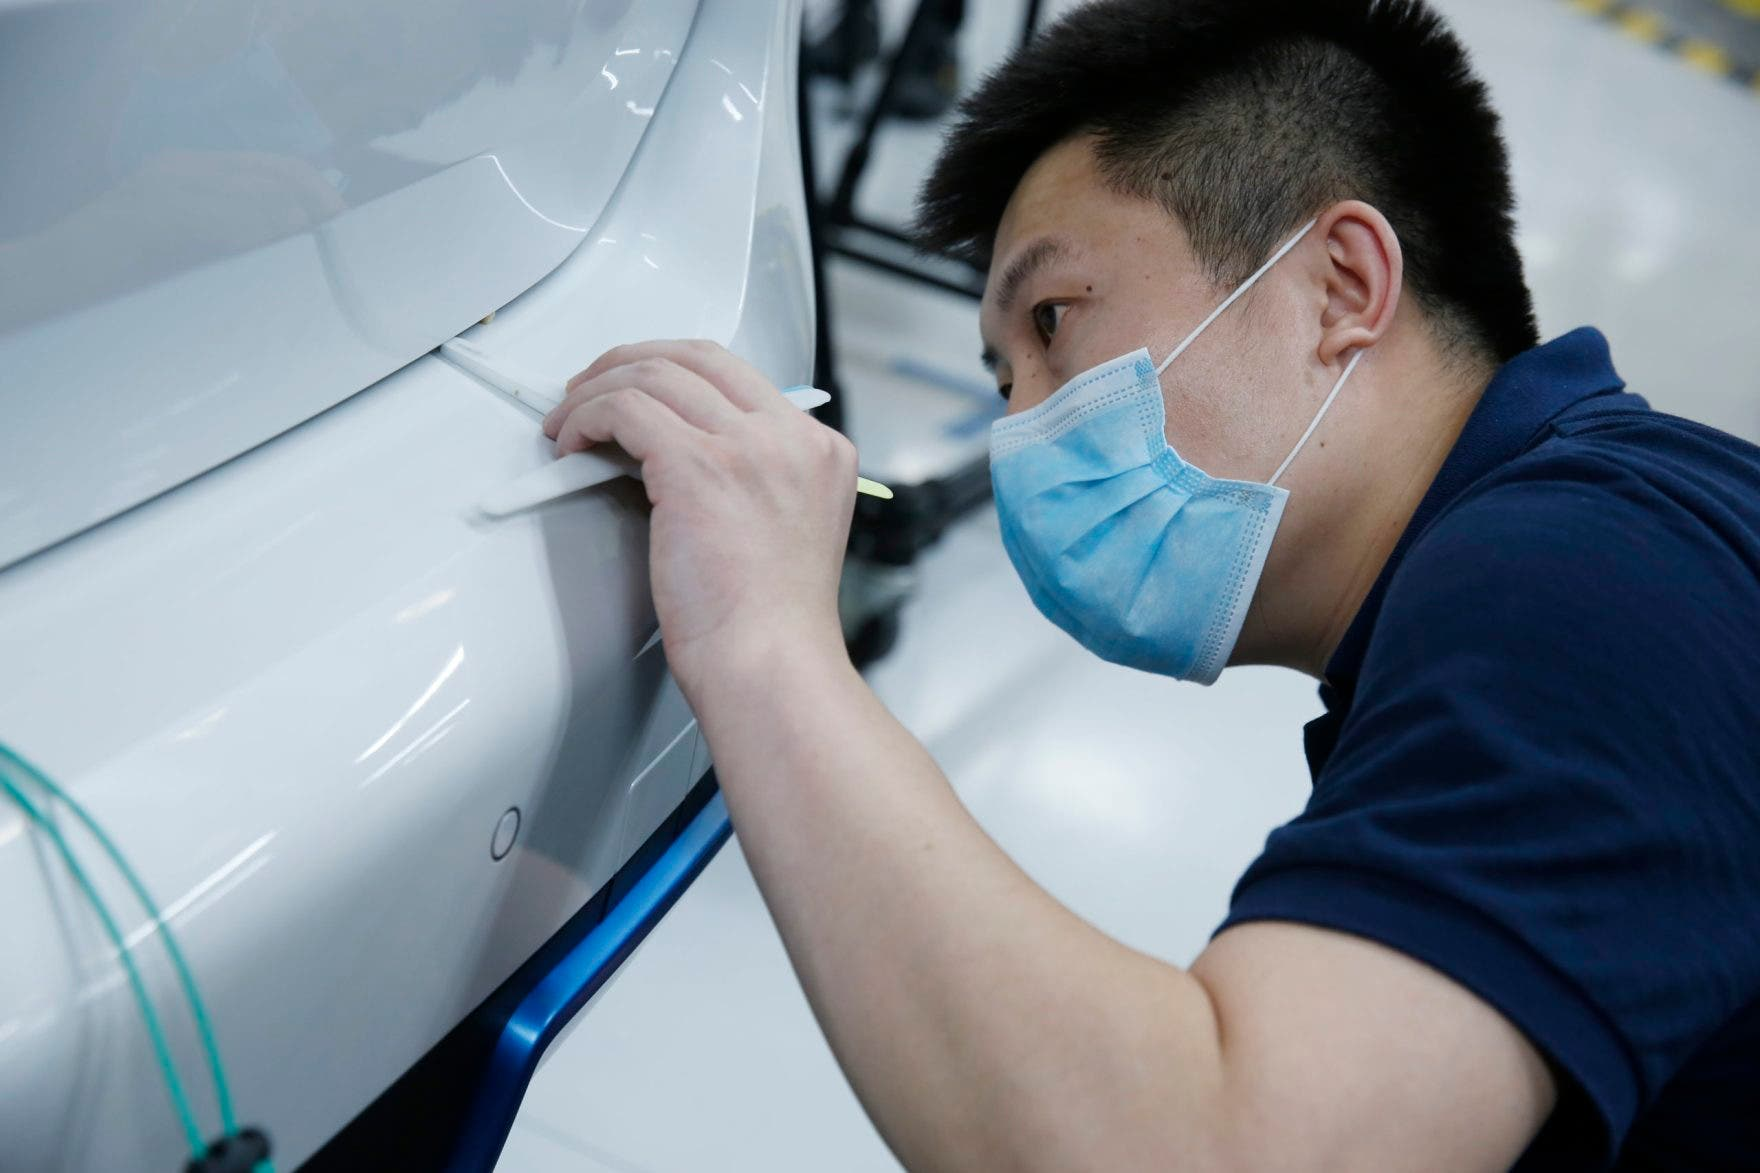 BMW iX3 electric SUV China production jobs